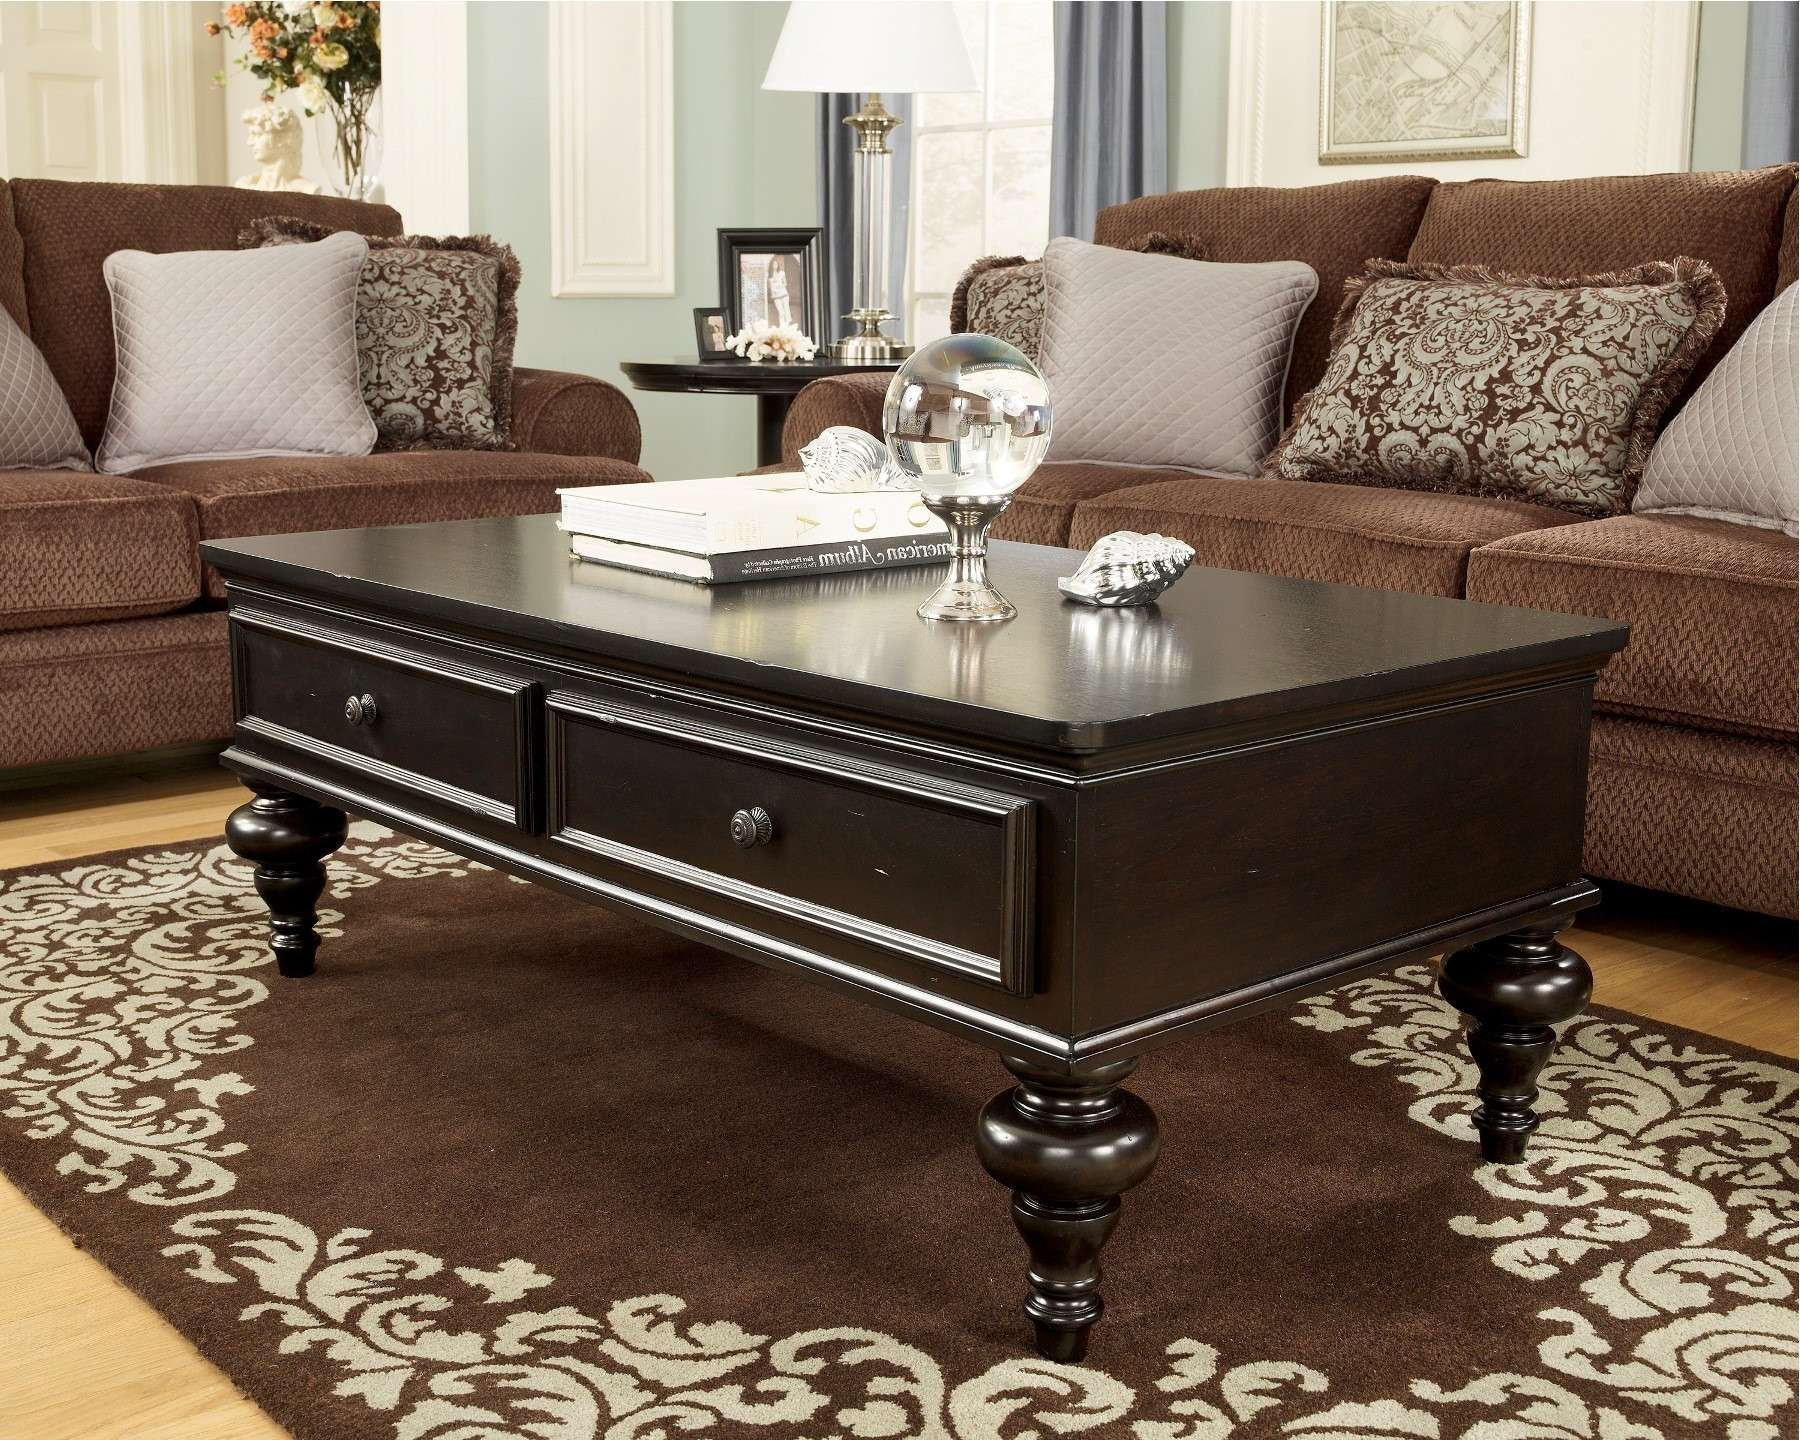 Popular Dark Wood Coffee Table Storages With Regard To Coffee Table : Wonderful Ashley Furniture Bar Stools Ashley (View 8 of 10)